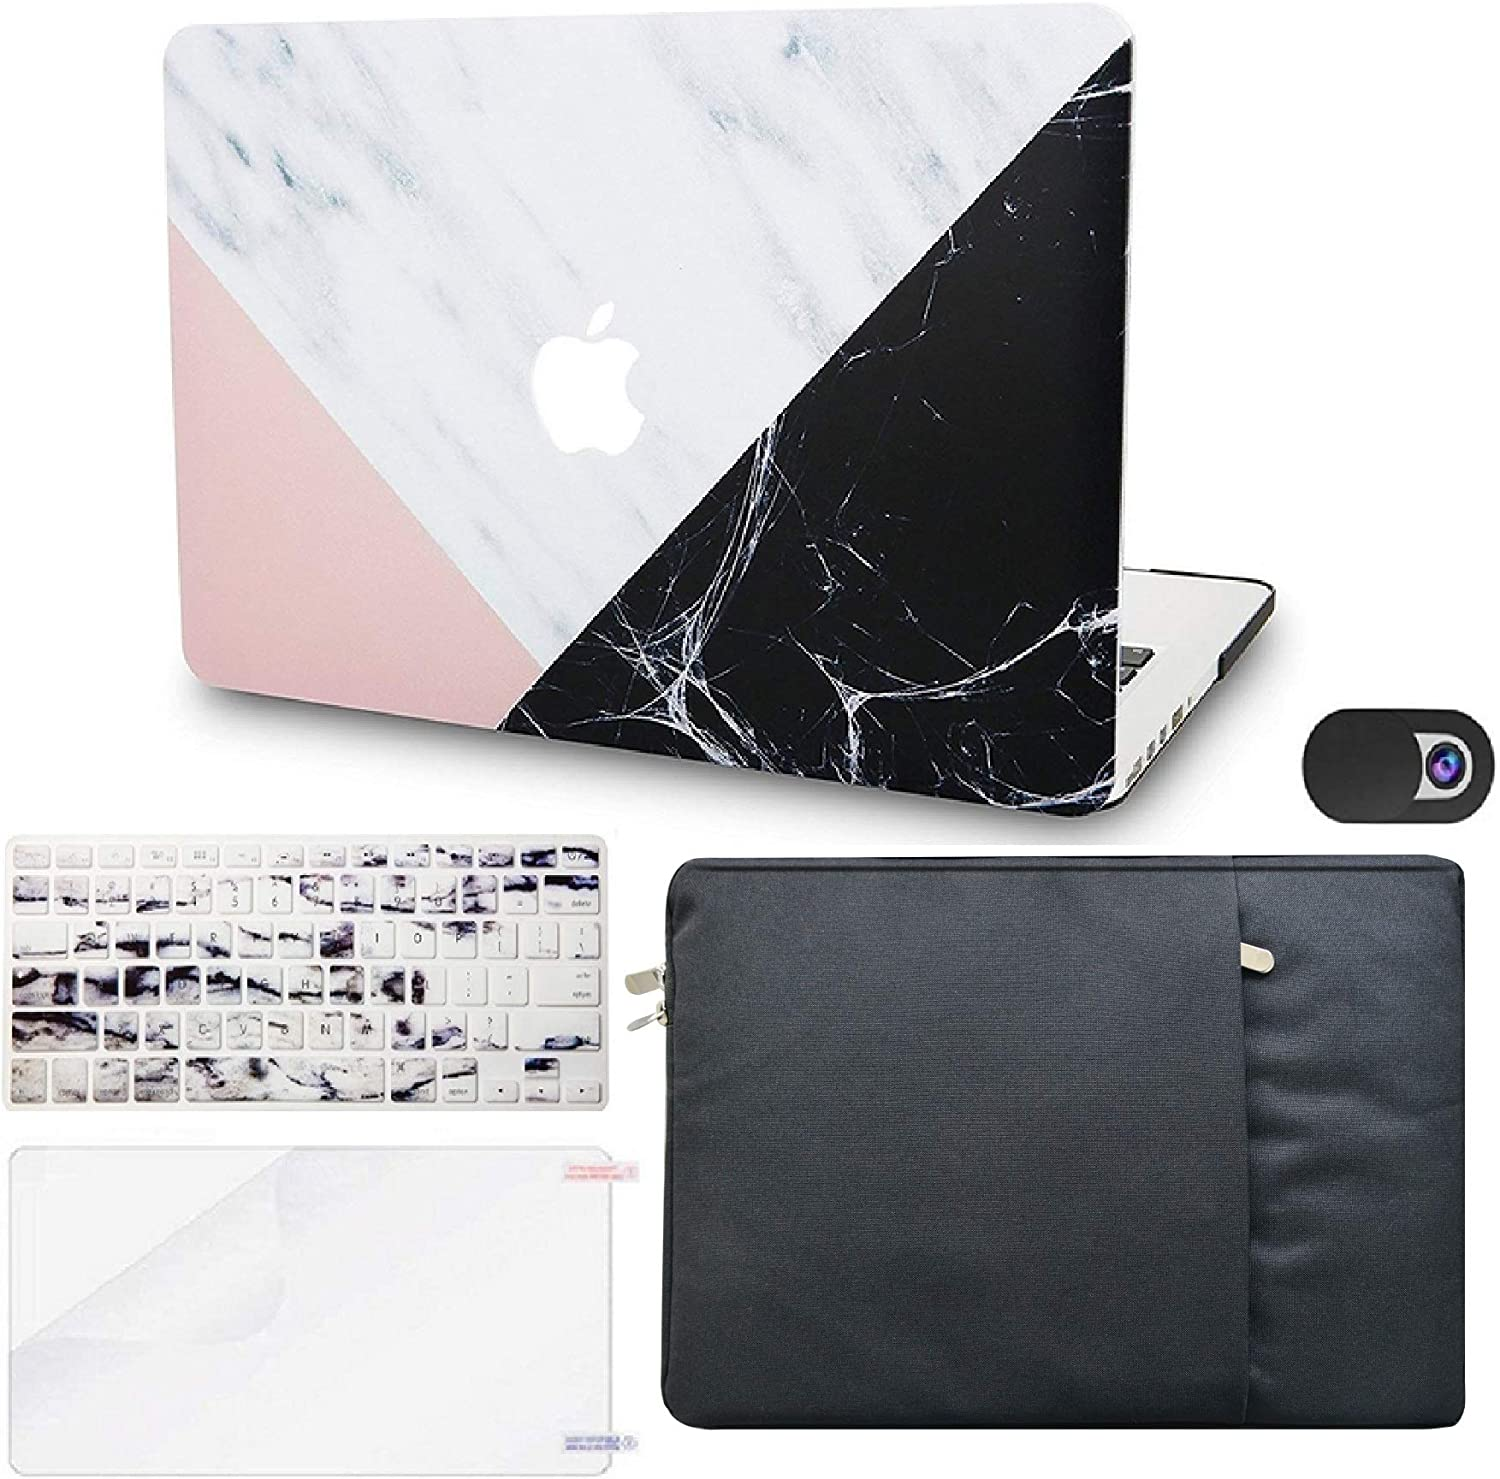 "KECC Laptop Case for MacBook Air 13"" Retina (2020, Touch ID) w/Keyboard Cover + Sleeve + Screen Protector + Webcam Cover (5 in 1 Bundle) Plastic Hard Shell Case A2179 (White Marble Pink Black)"